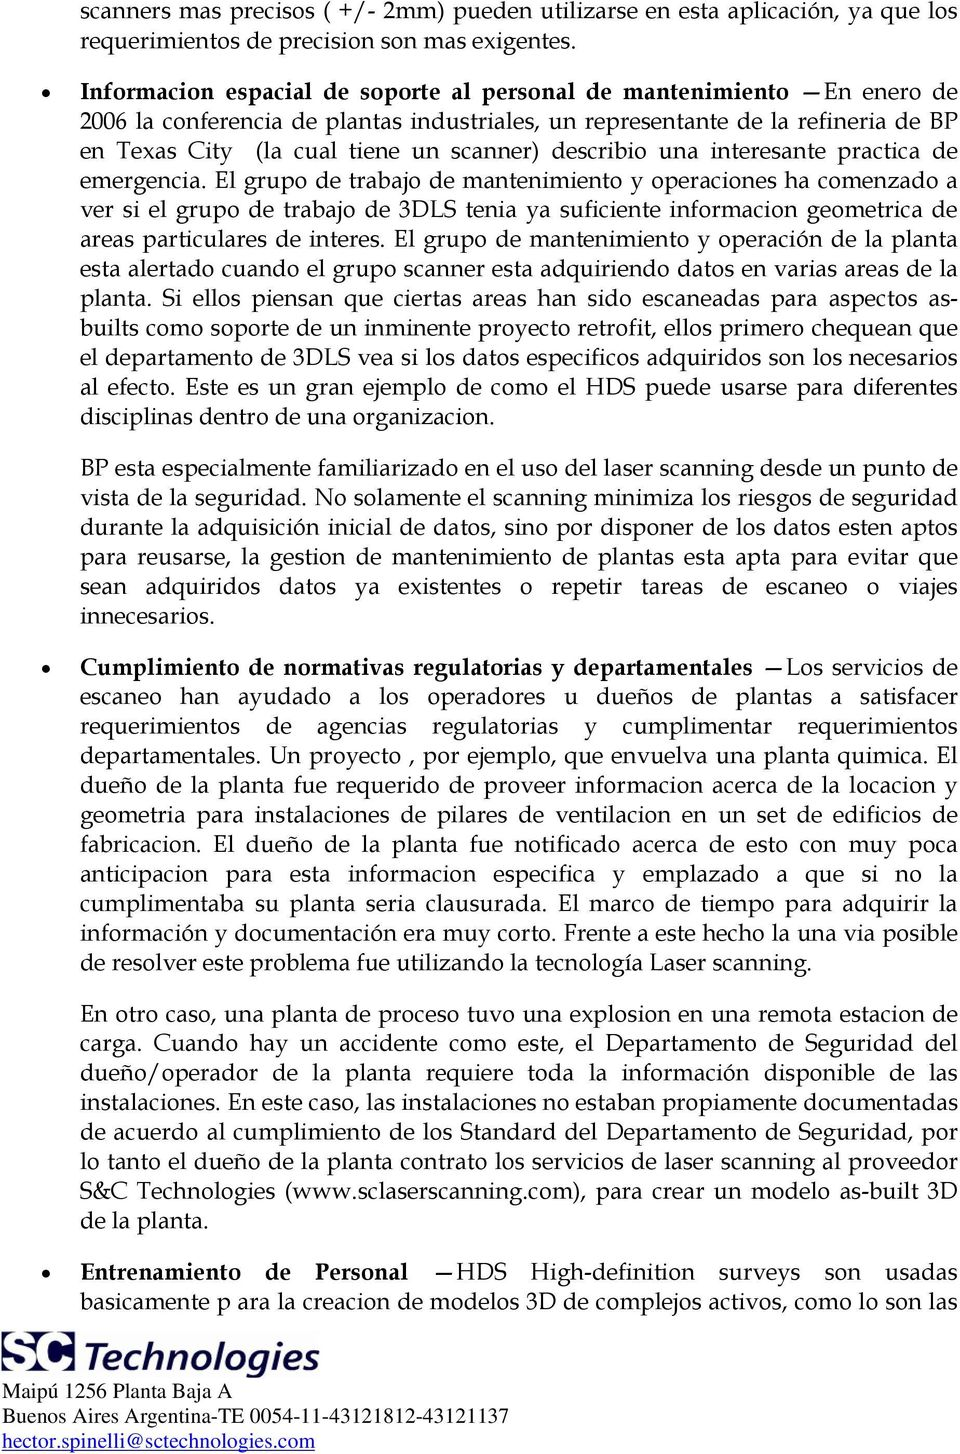 describio una interesante practica de emergencia.